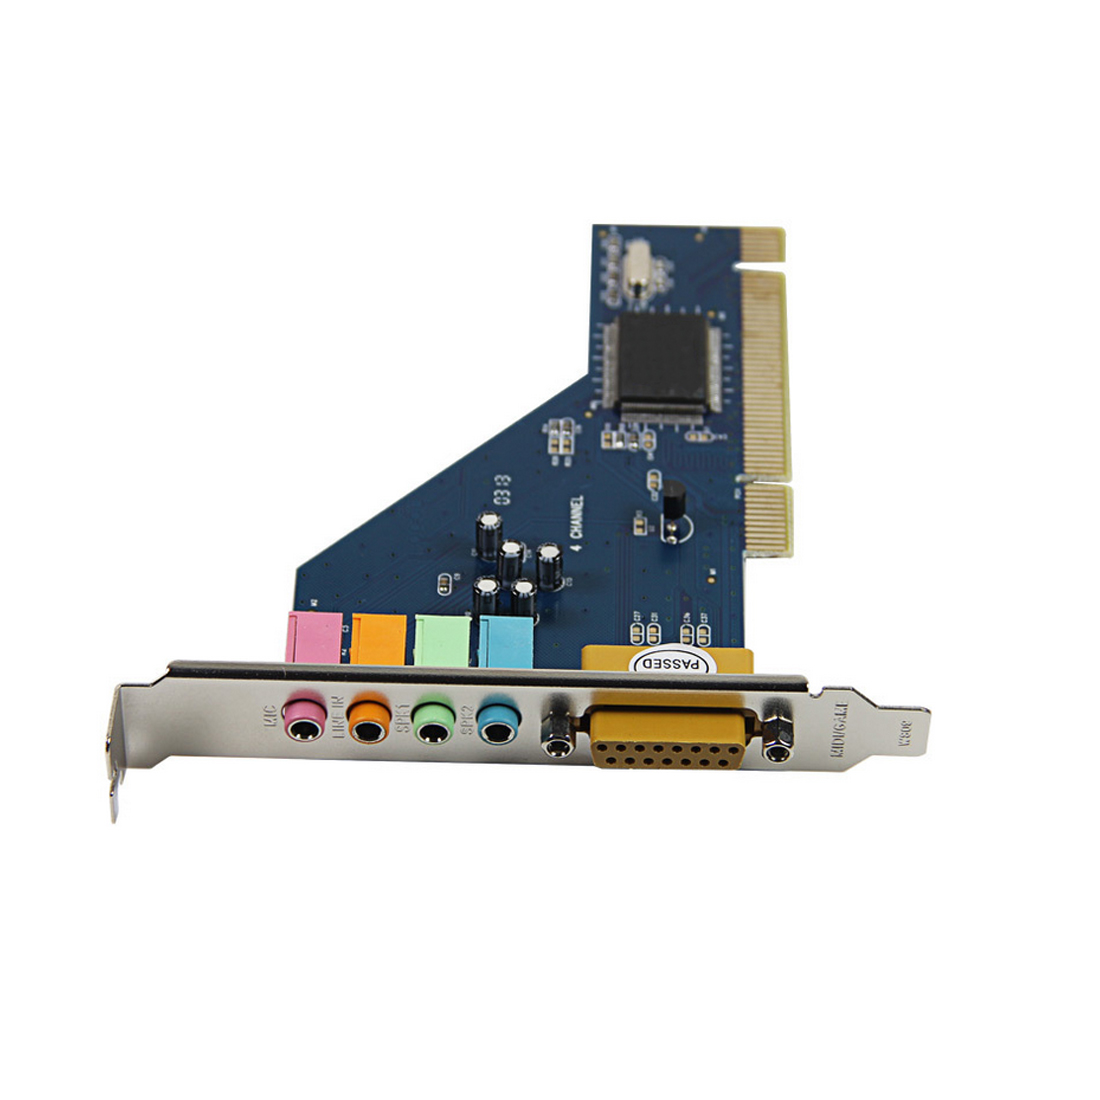 NOYOKERE Hot Sale High Quality 4 Channel 8738 Chip 3D Audio Stereo PCI Sound Card for Win7 64 Bit